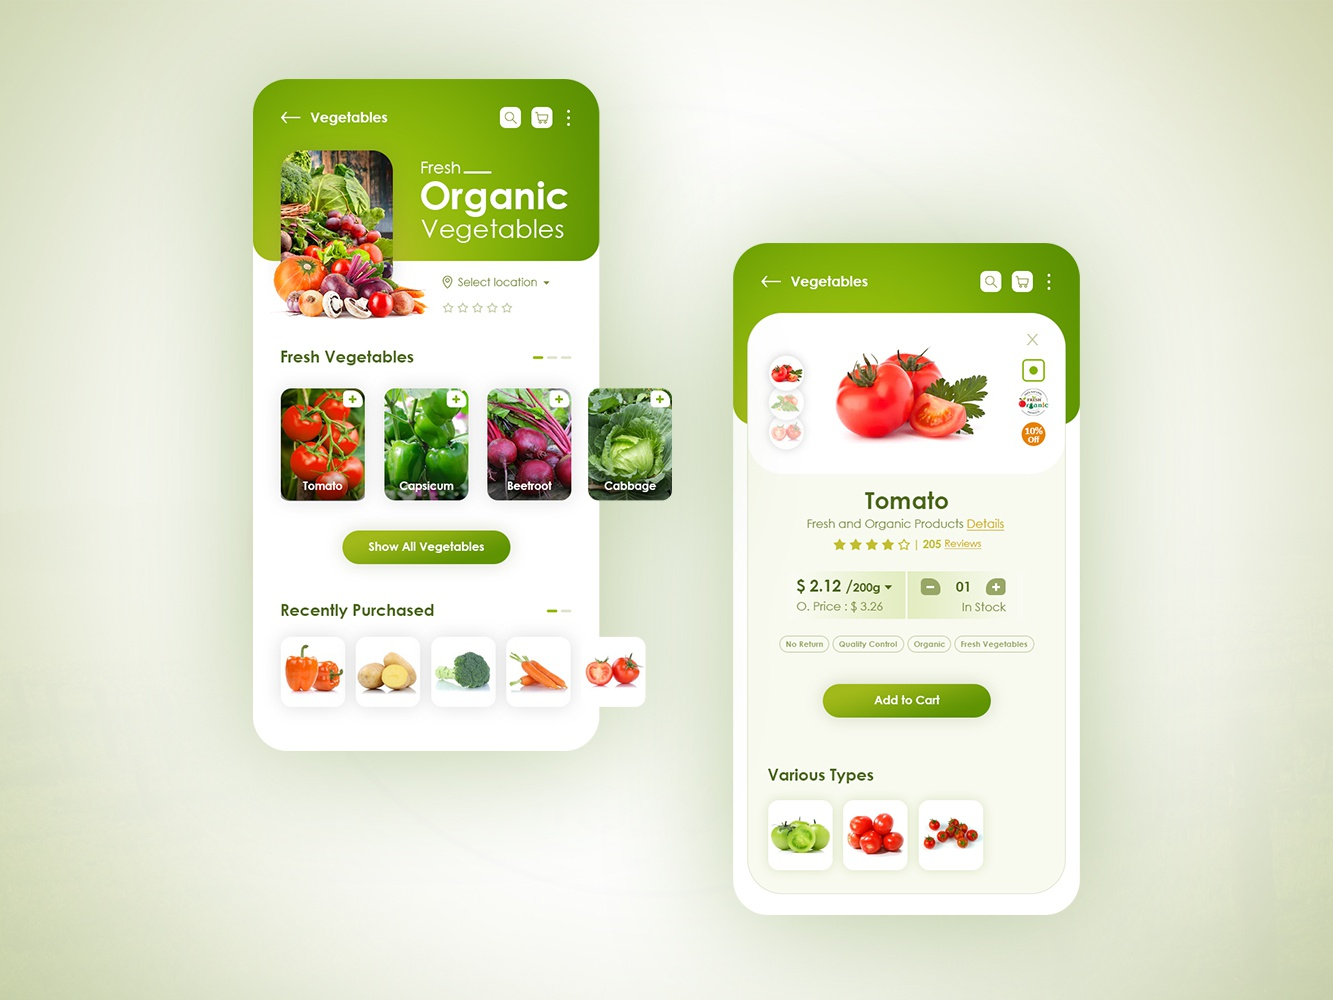 Organic Product App - Clean Design product list view product details uiux mobile application corporate icon illustration android design ux ui ios logo branding mobile app clean design